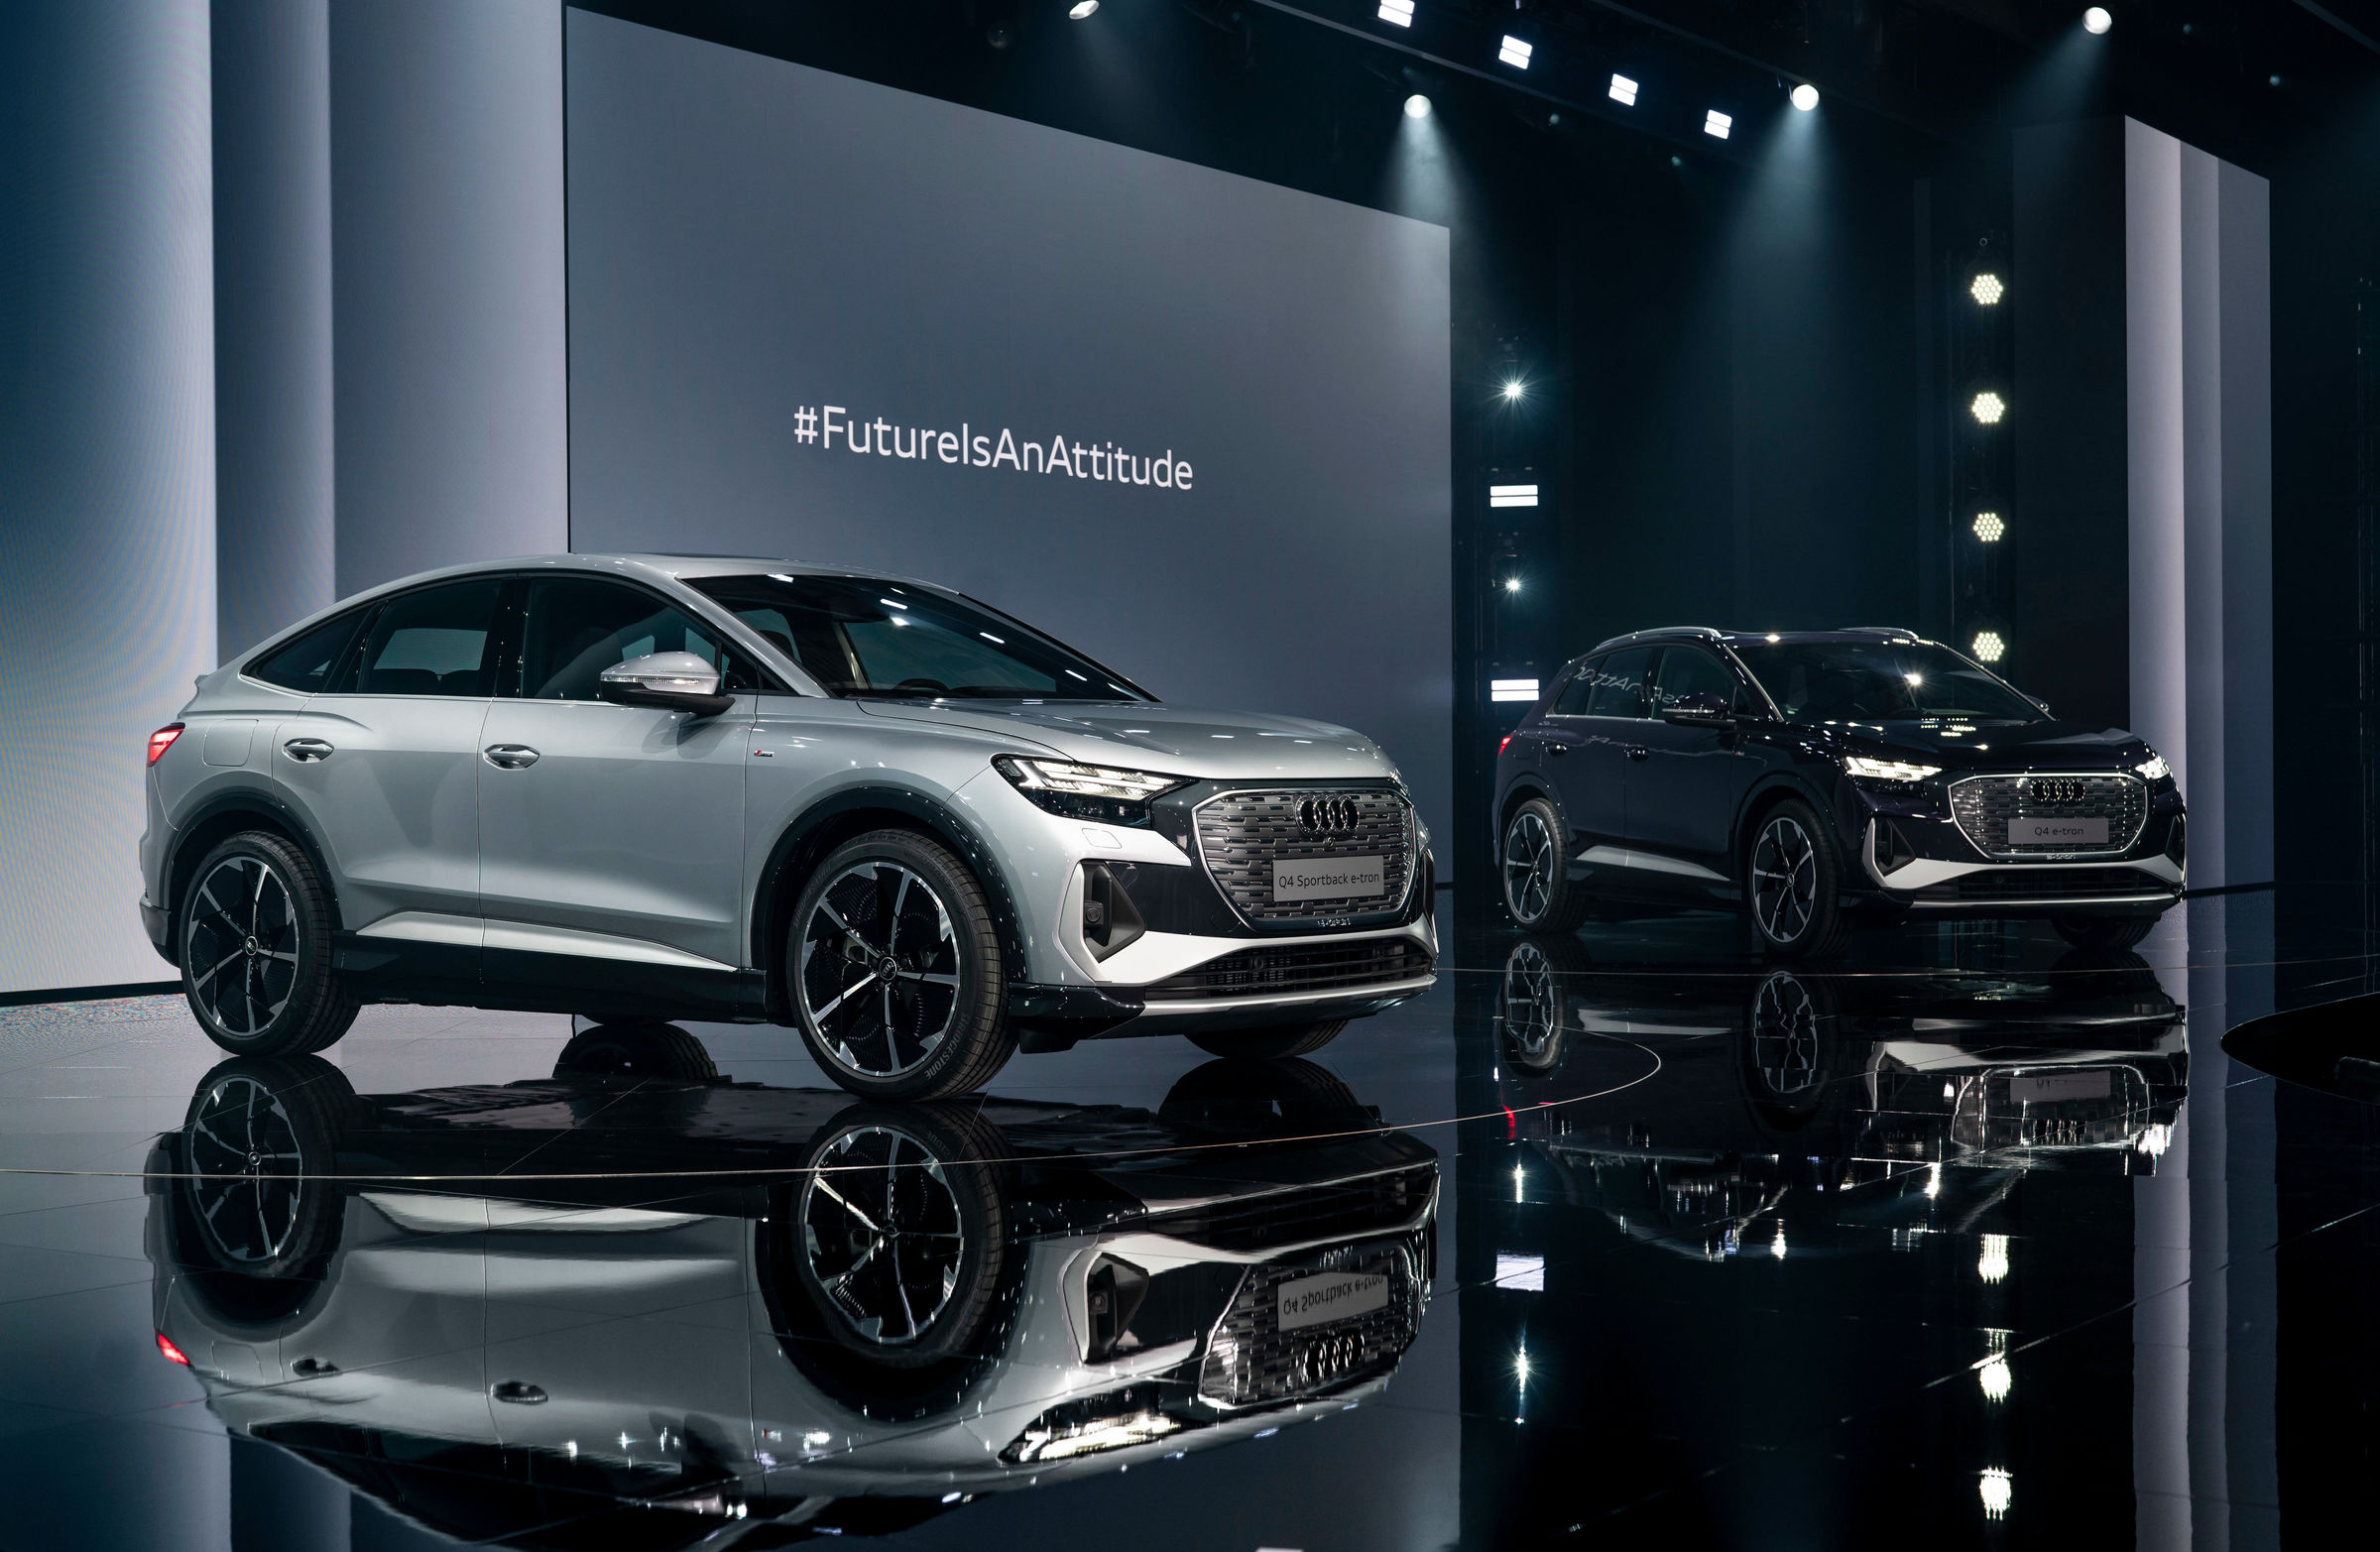 Electrifying: the online world premiere of the Audi Q4 e-tron - Image 7